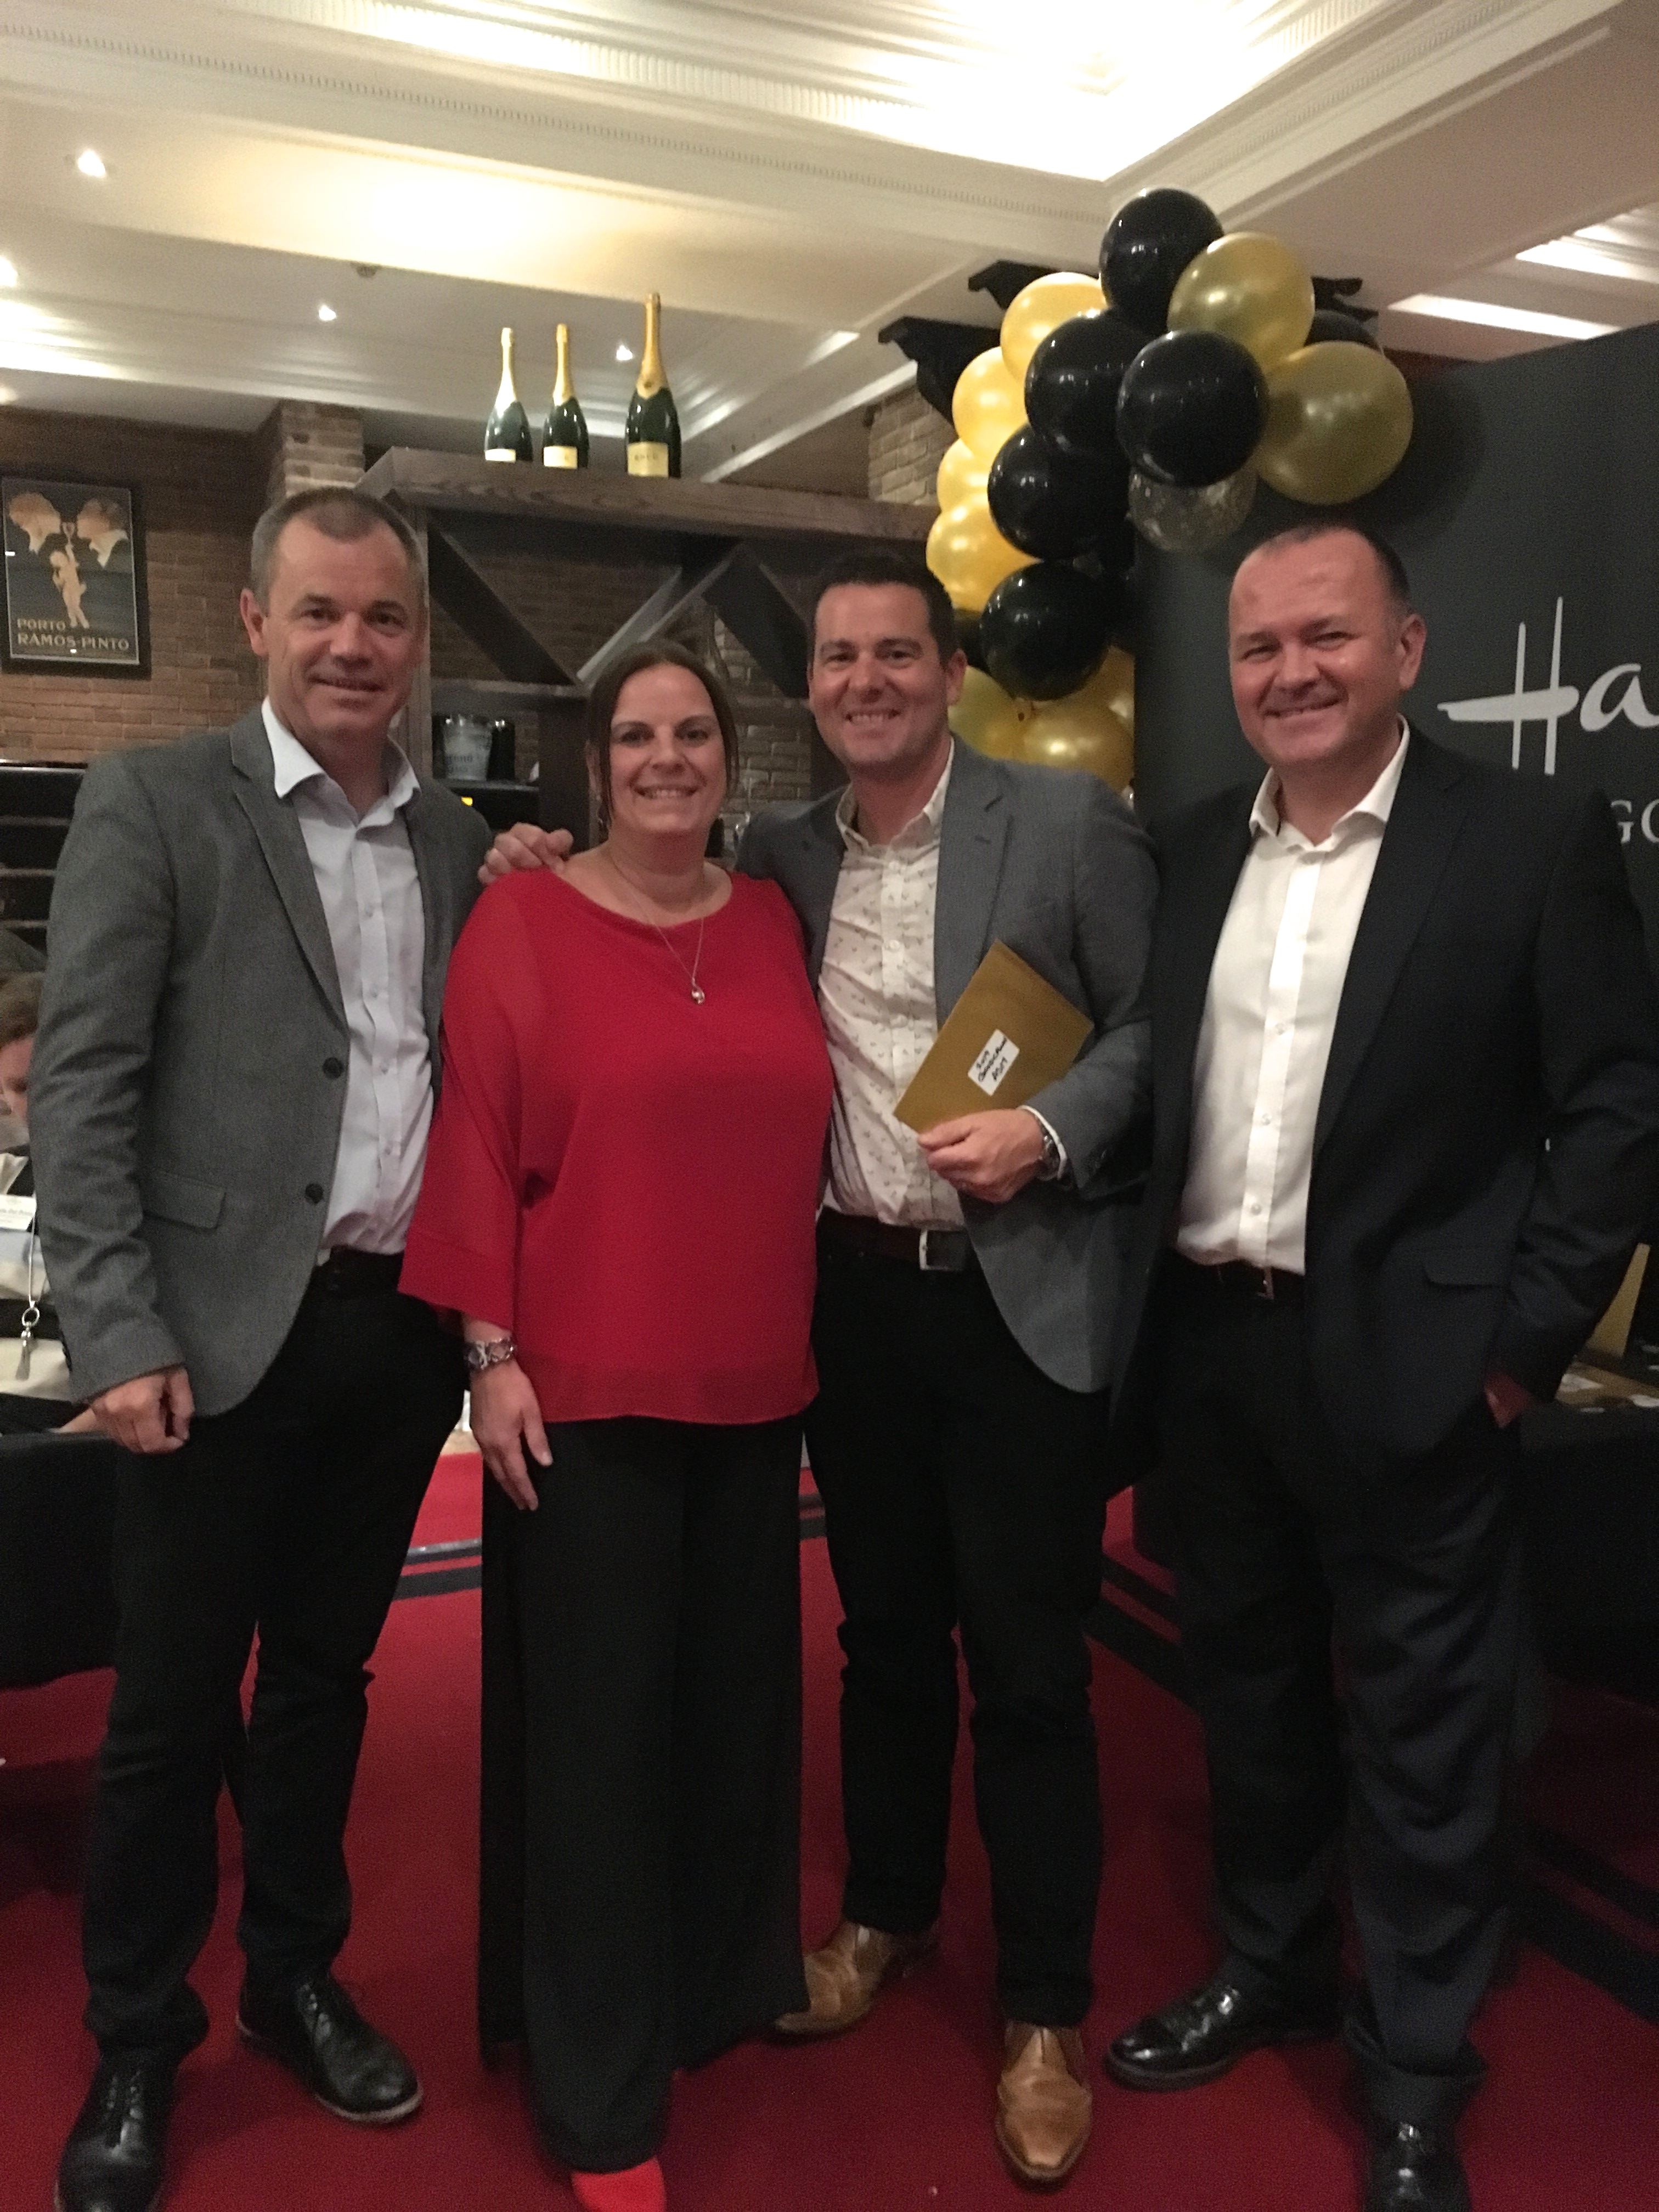 Above: Hallmark's Sue Strong was presented with theGold Crown Outstanding Area Sales Manager of the Year Award.